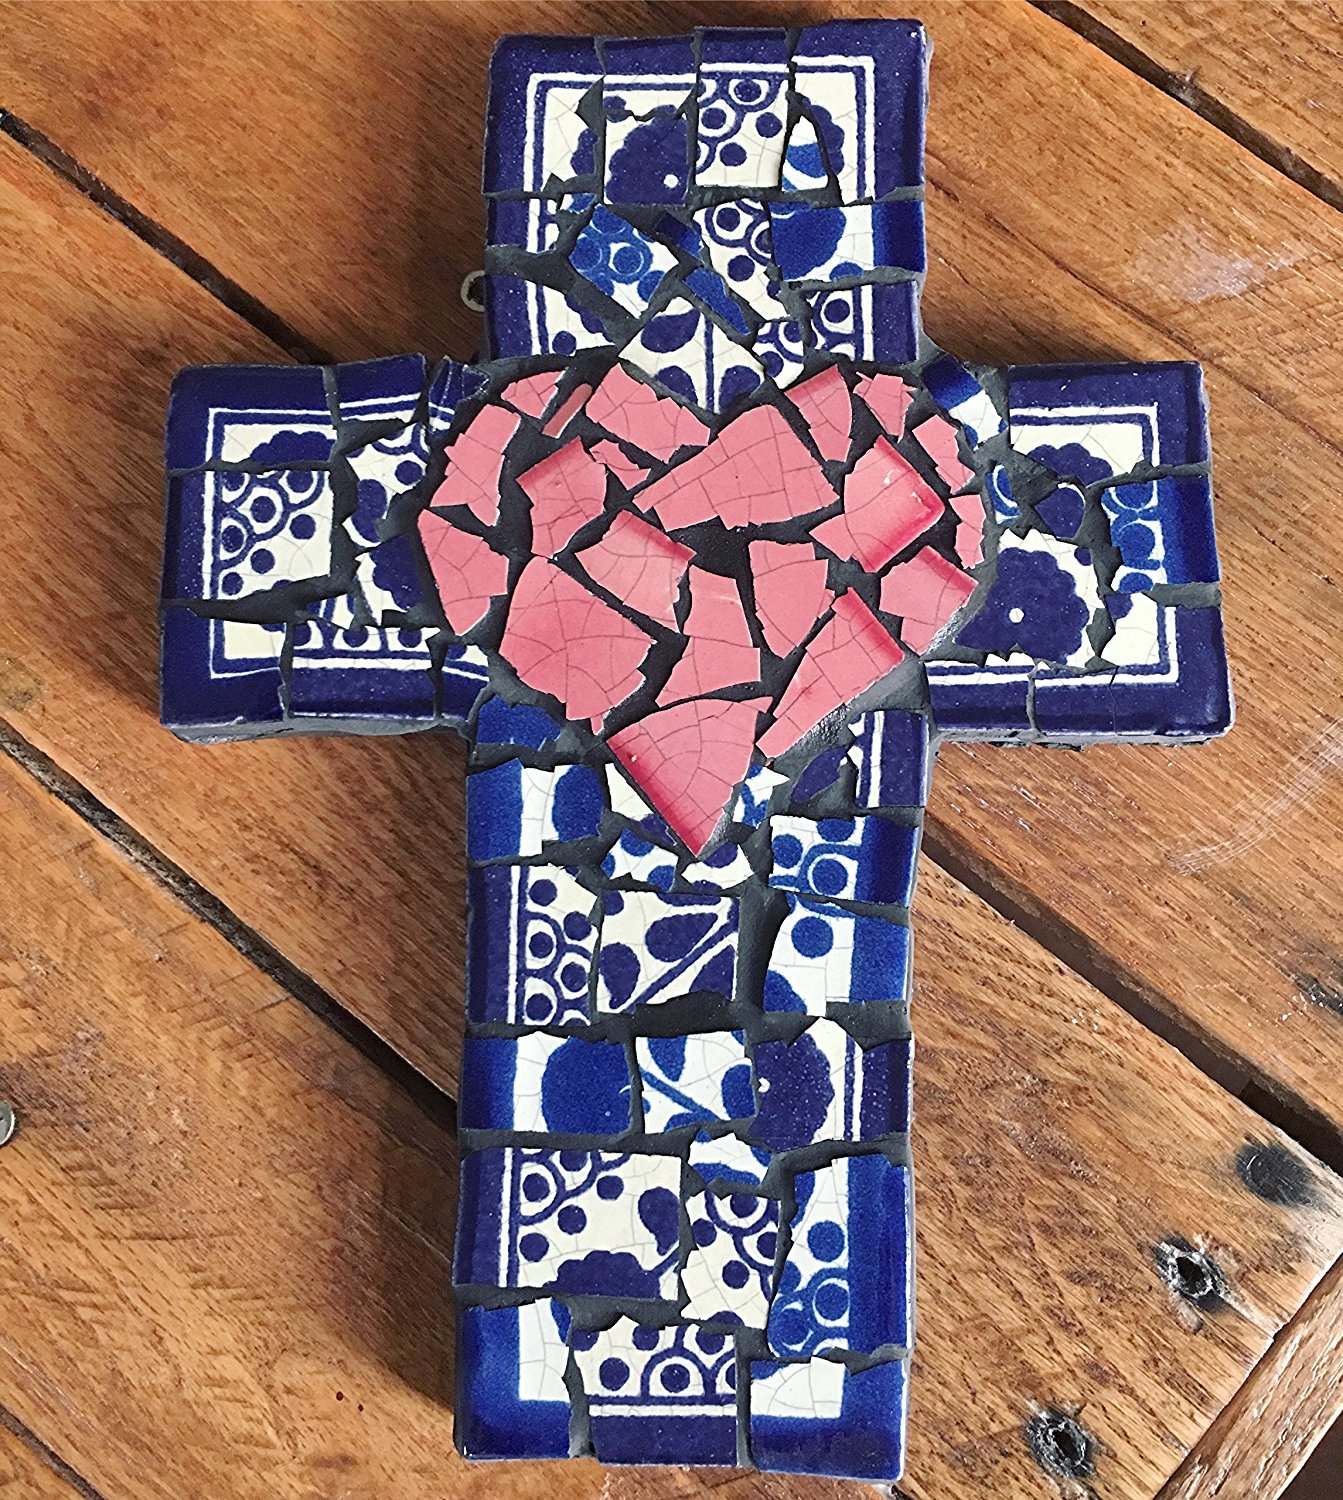 Mexican Tile Talavera Wall Cross 9 inch X 6 inch Handcrafted Mosaic Pink Heart, Blue and White Design Mexican Ceramic tile with Charcoal Grout